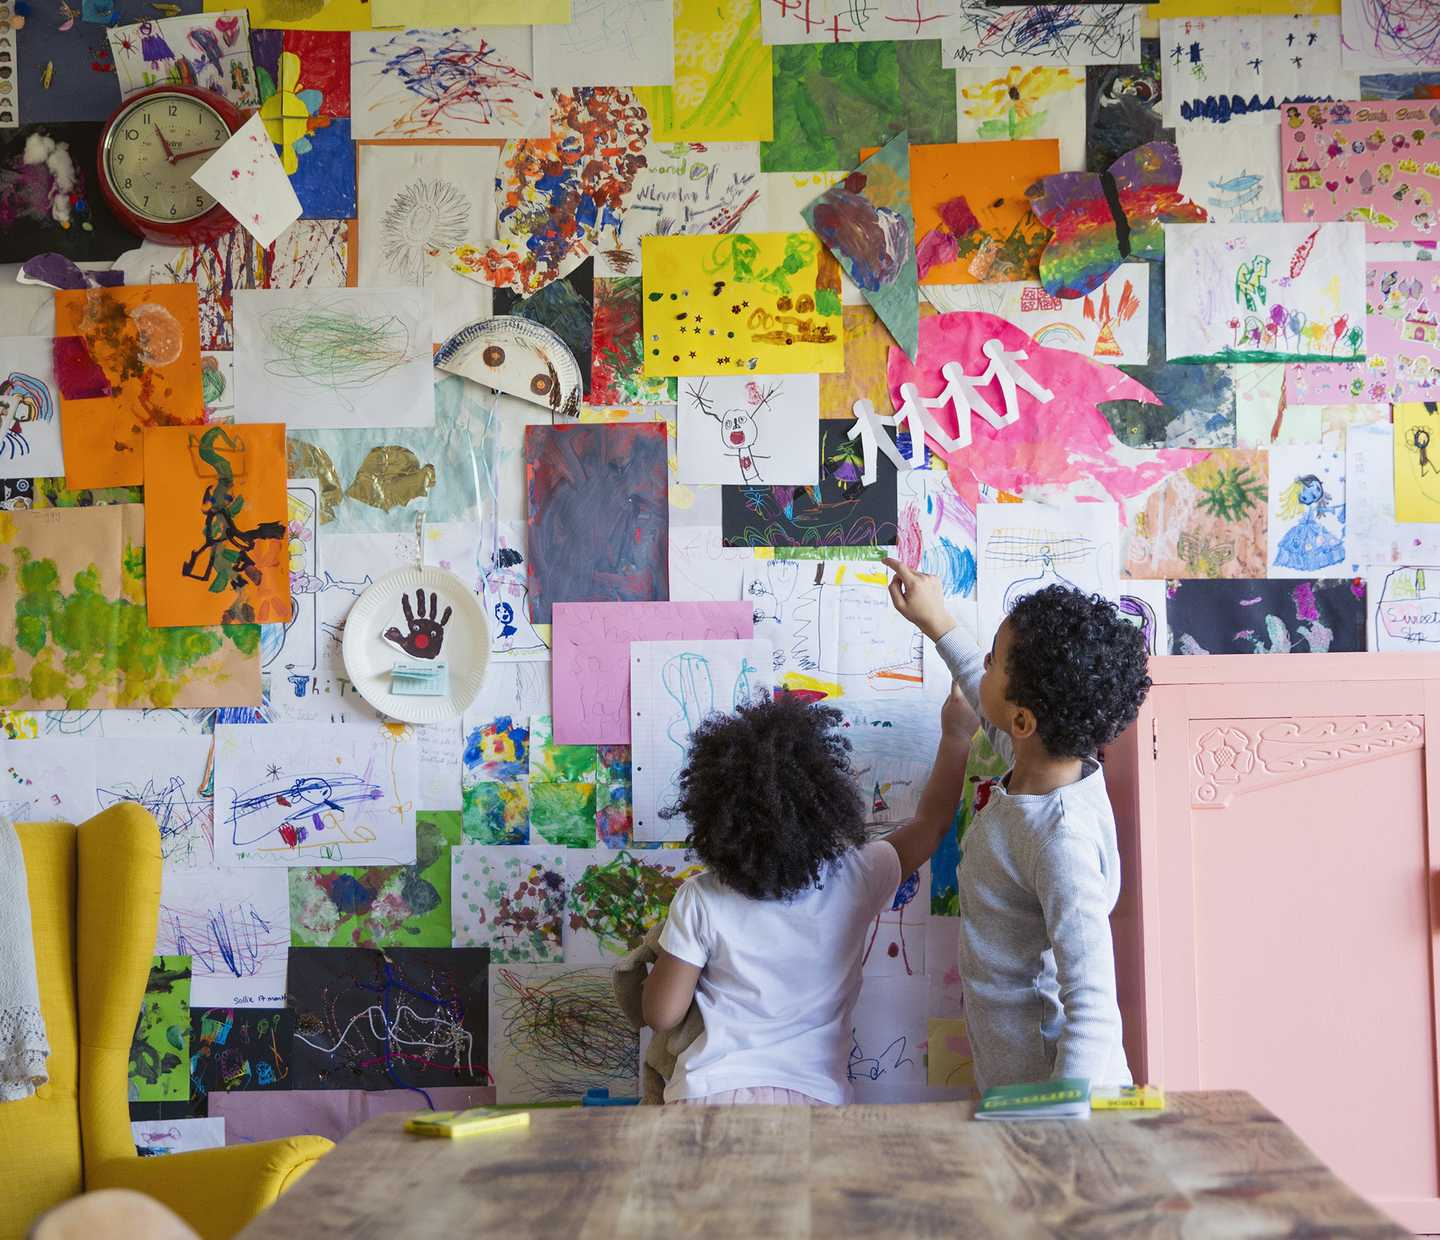 Two young children at a wall of handmade art